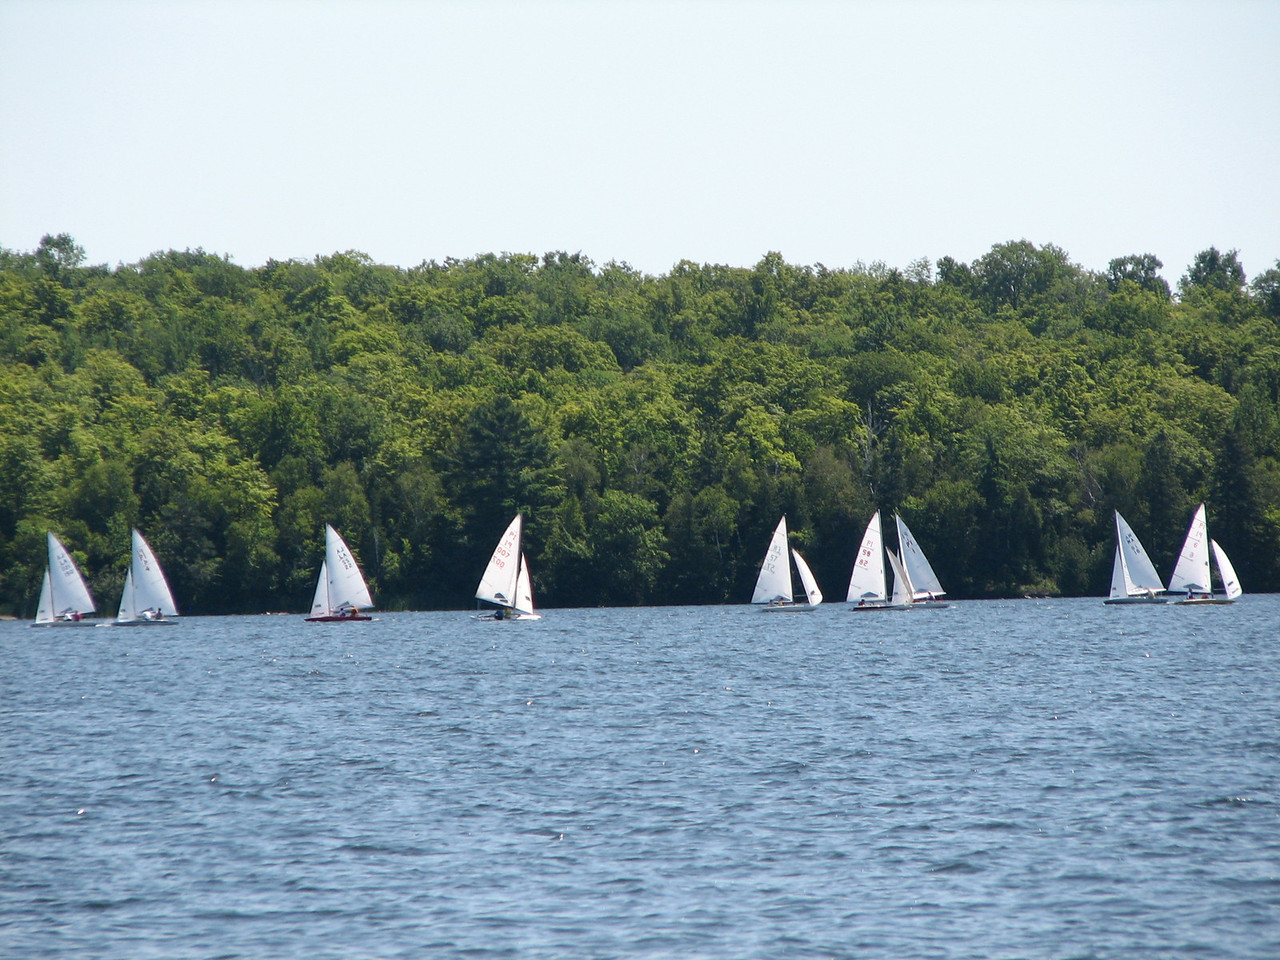 More view of sailboat race